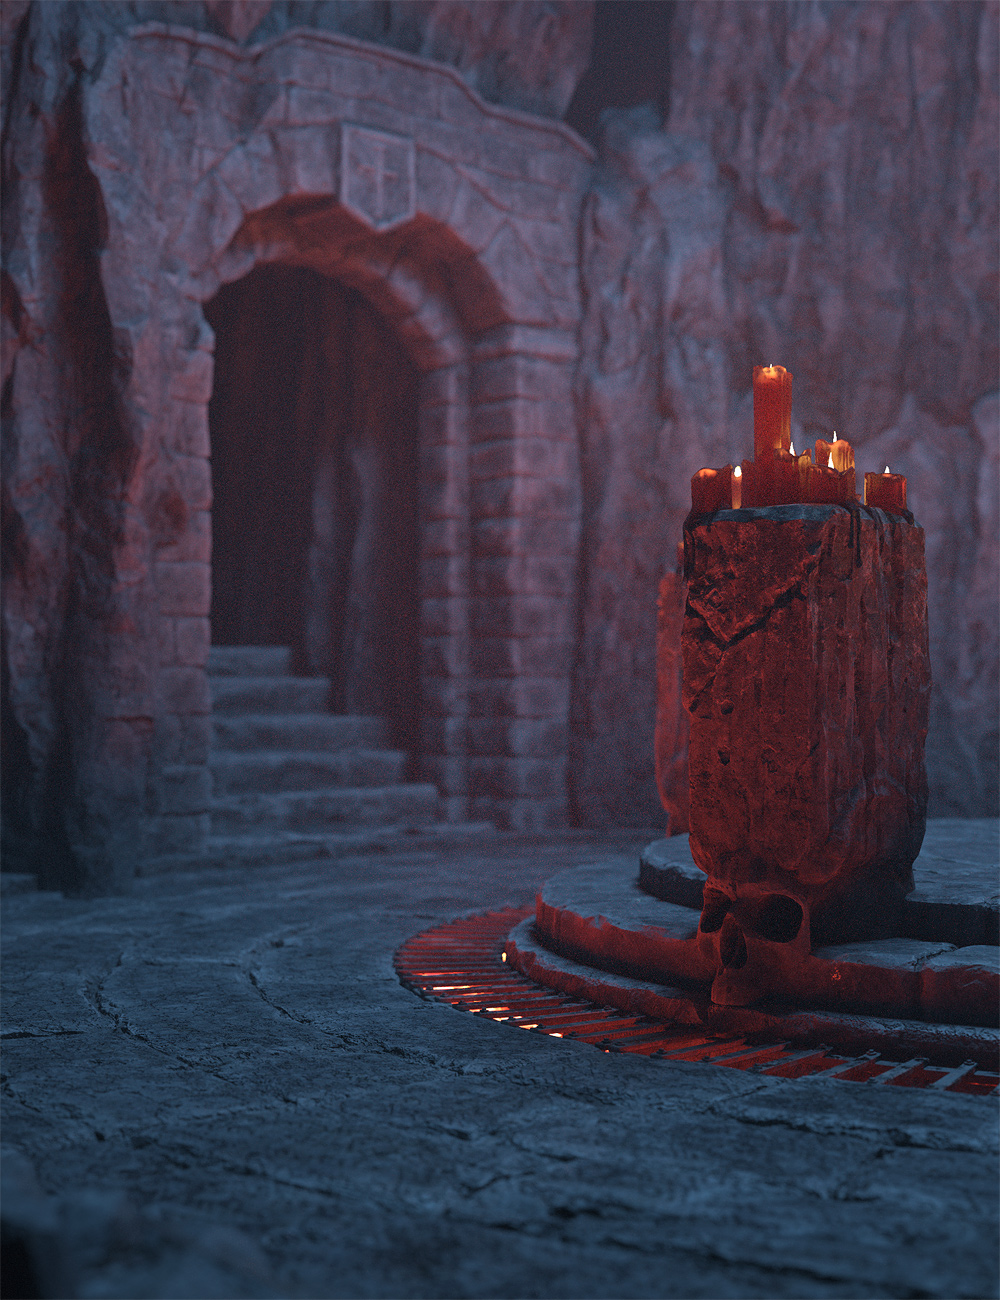 The Heart Of Darkness by: Stonemason, 3D Models by Daz 3D